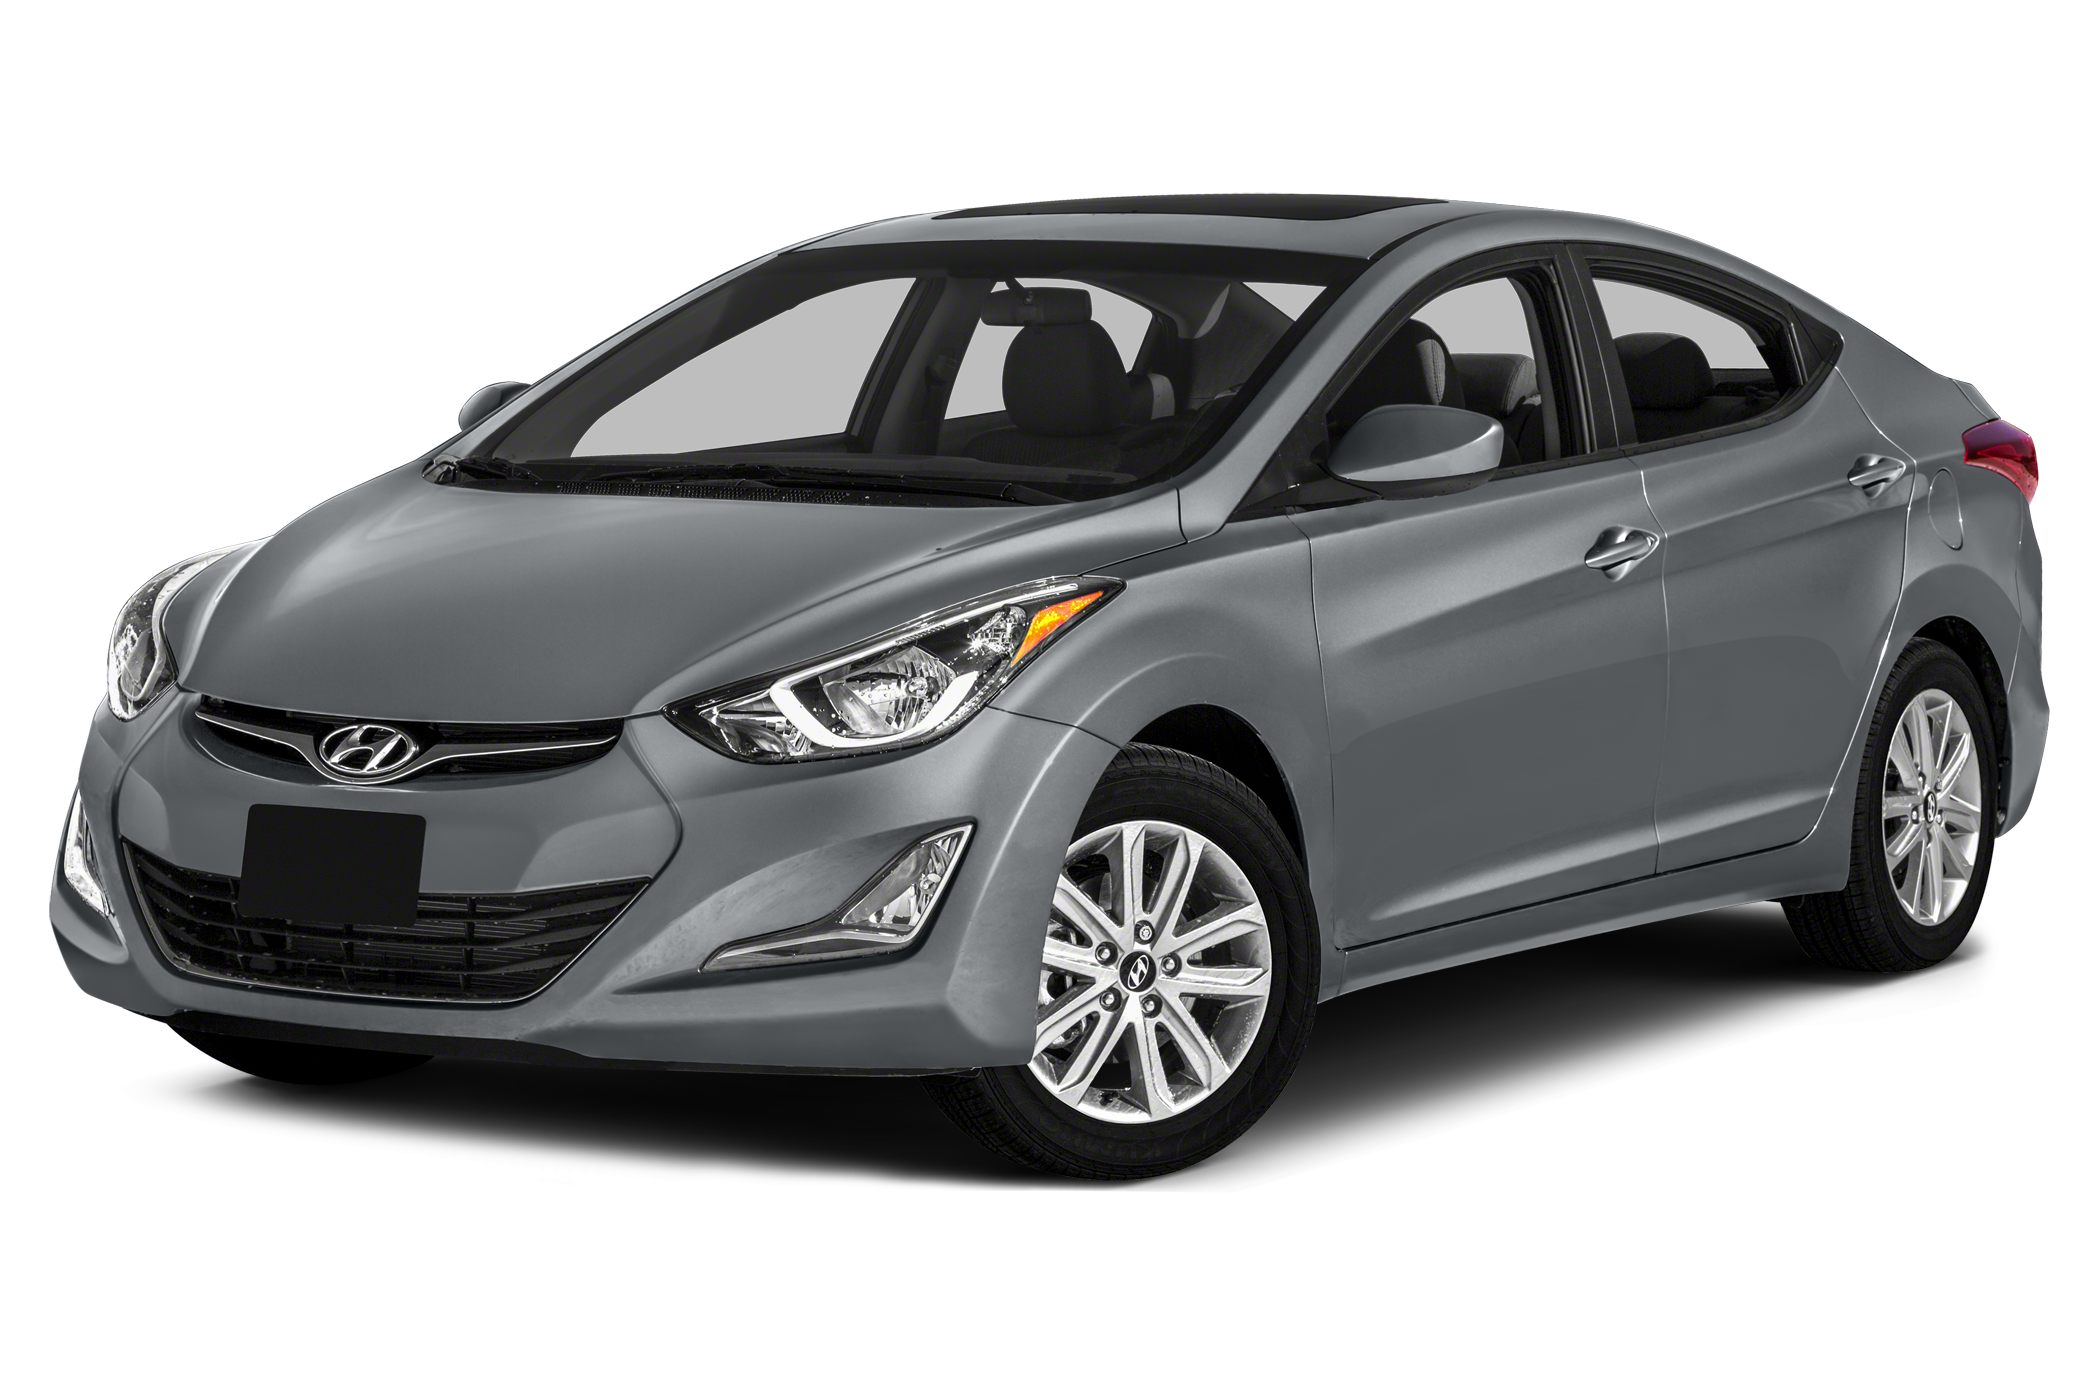 2015 Hyundai Elantra Limited Sedan for sale in Hicksville for $22,925 with 0 miles.